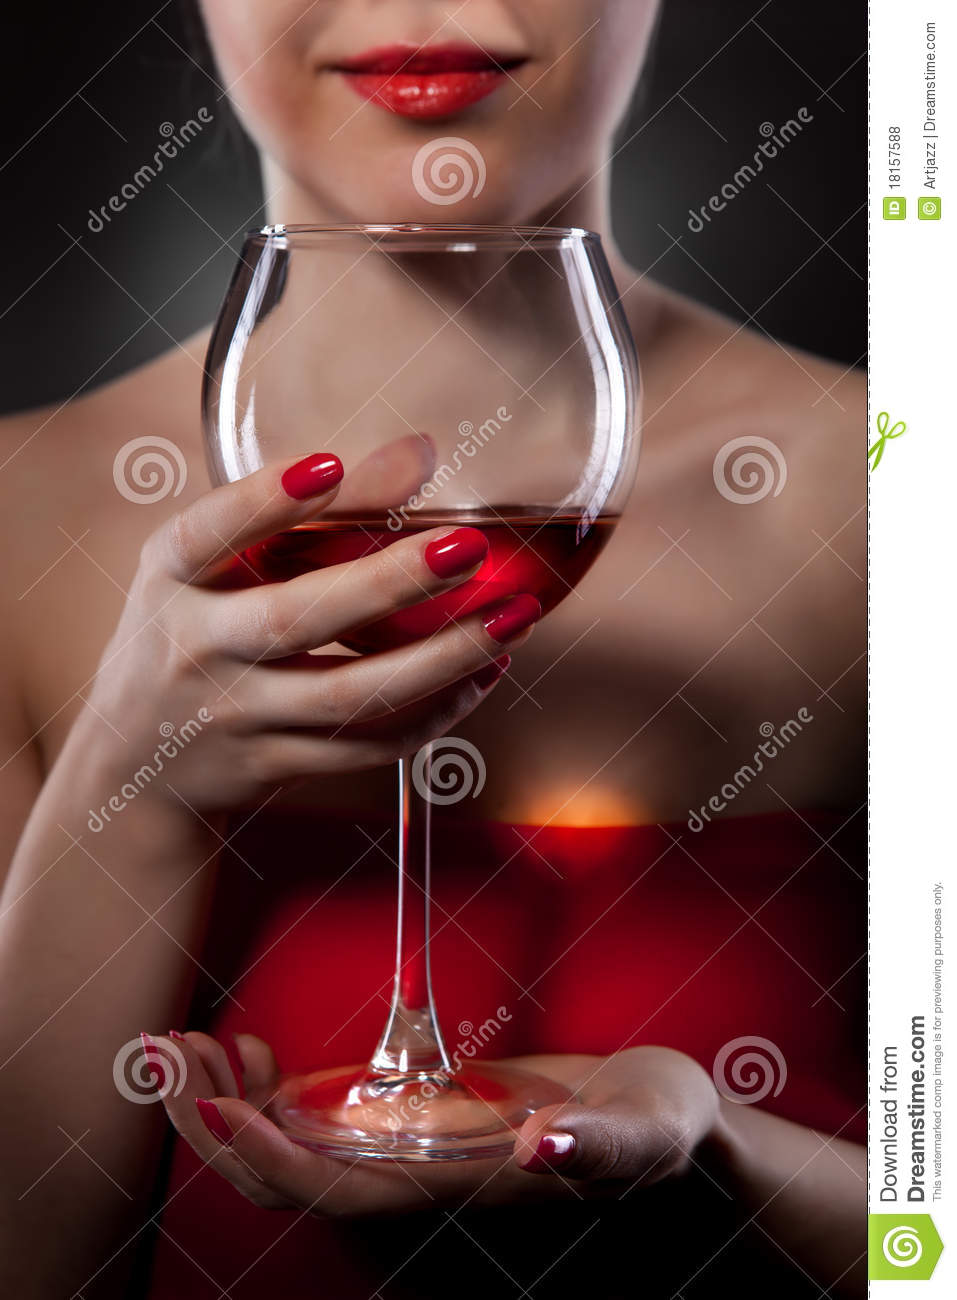 Woman In Red Holding Wine Glass Stock Photo - Image: 18157588